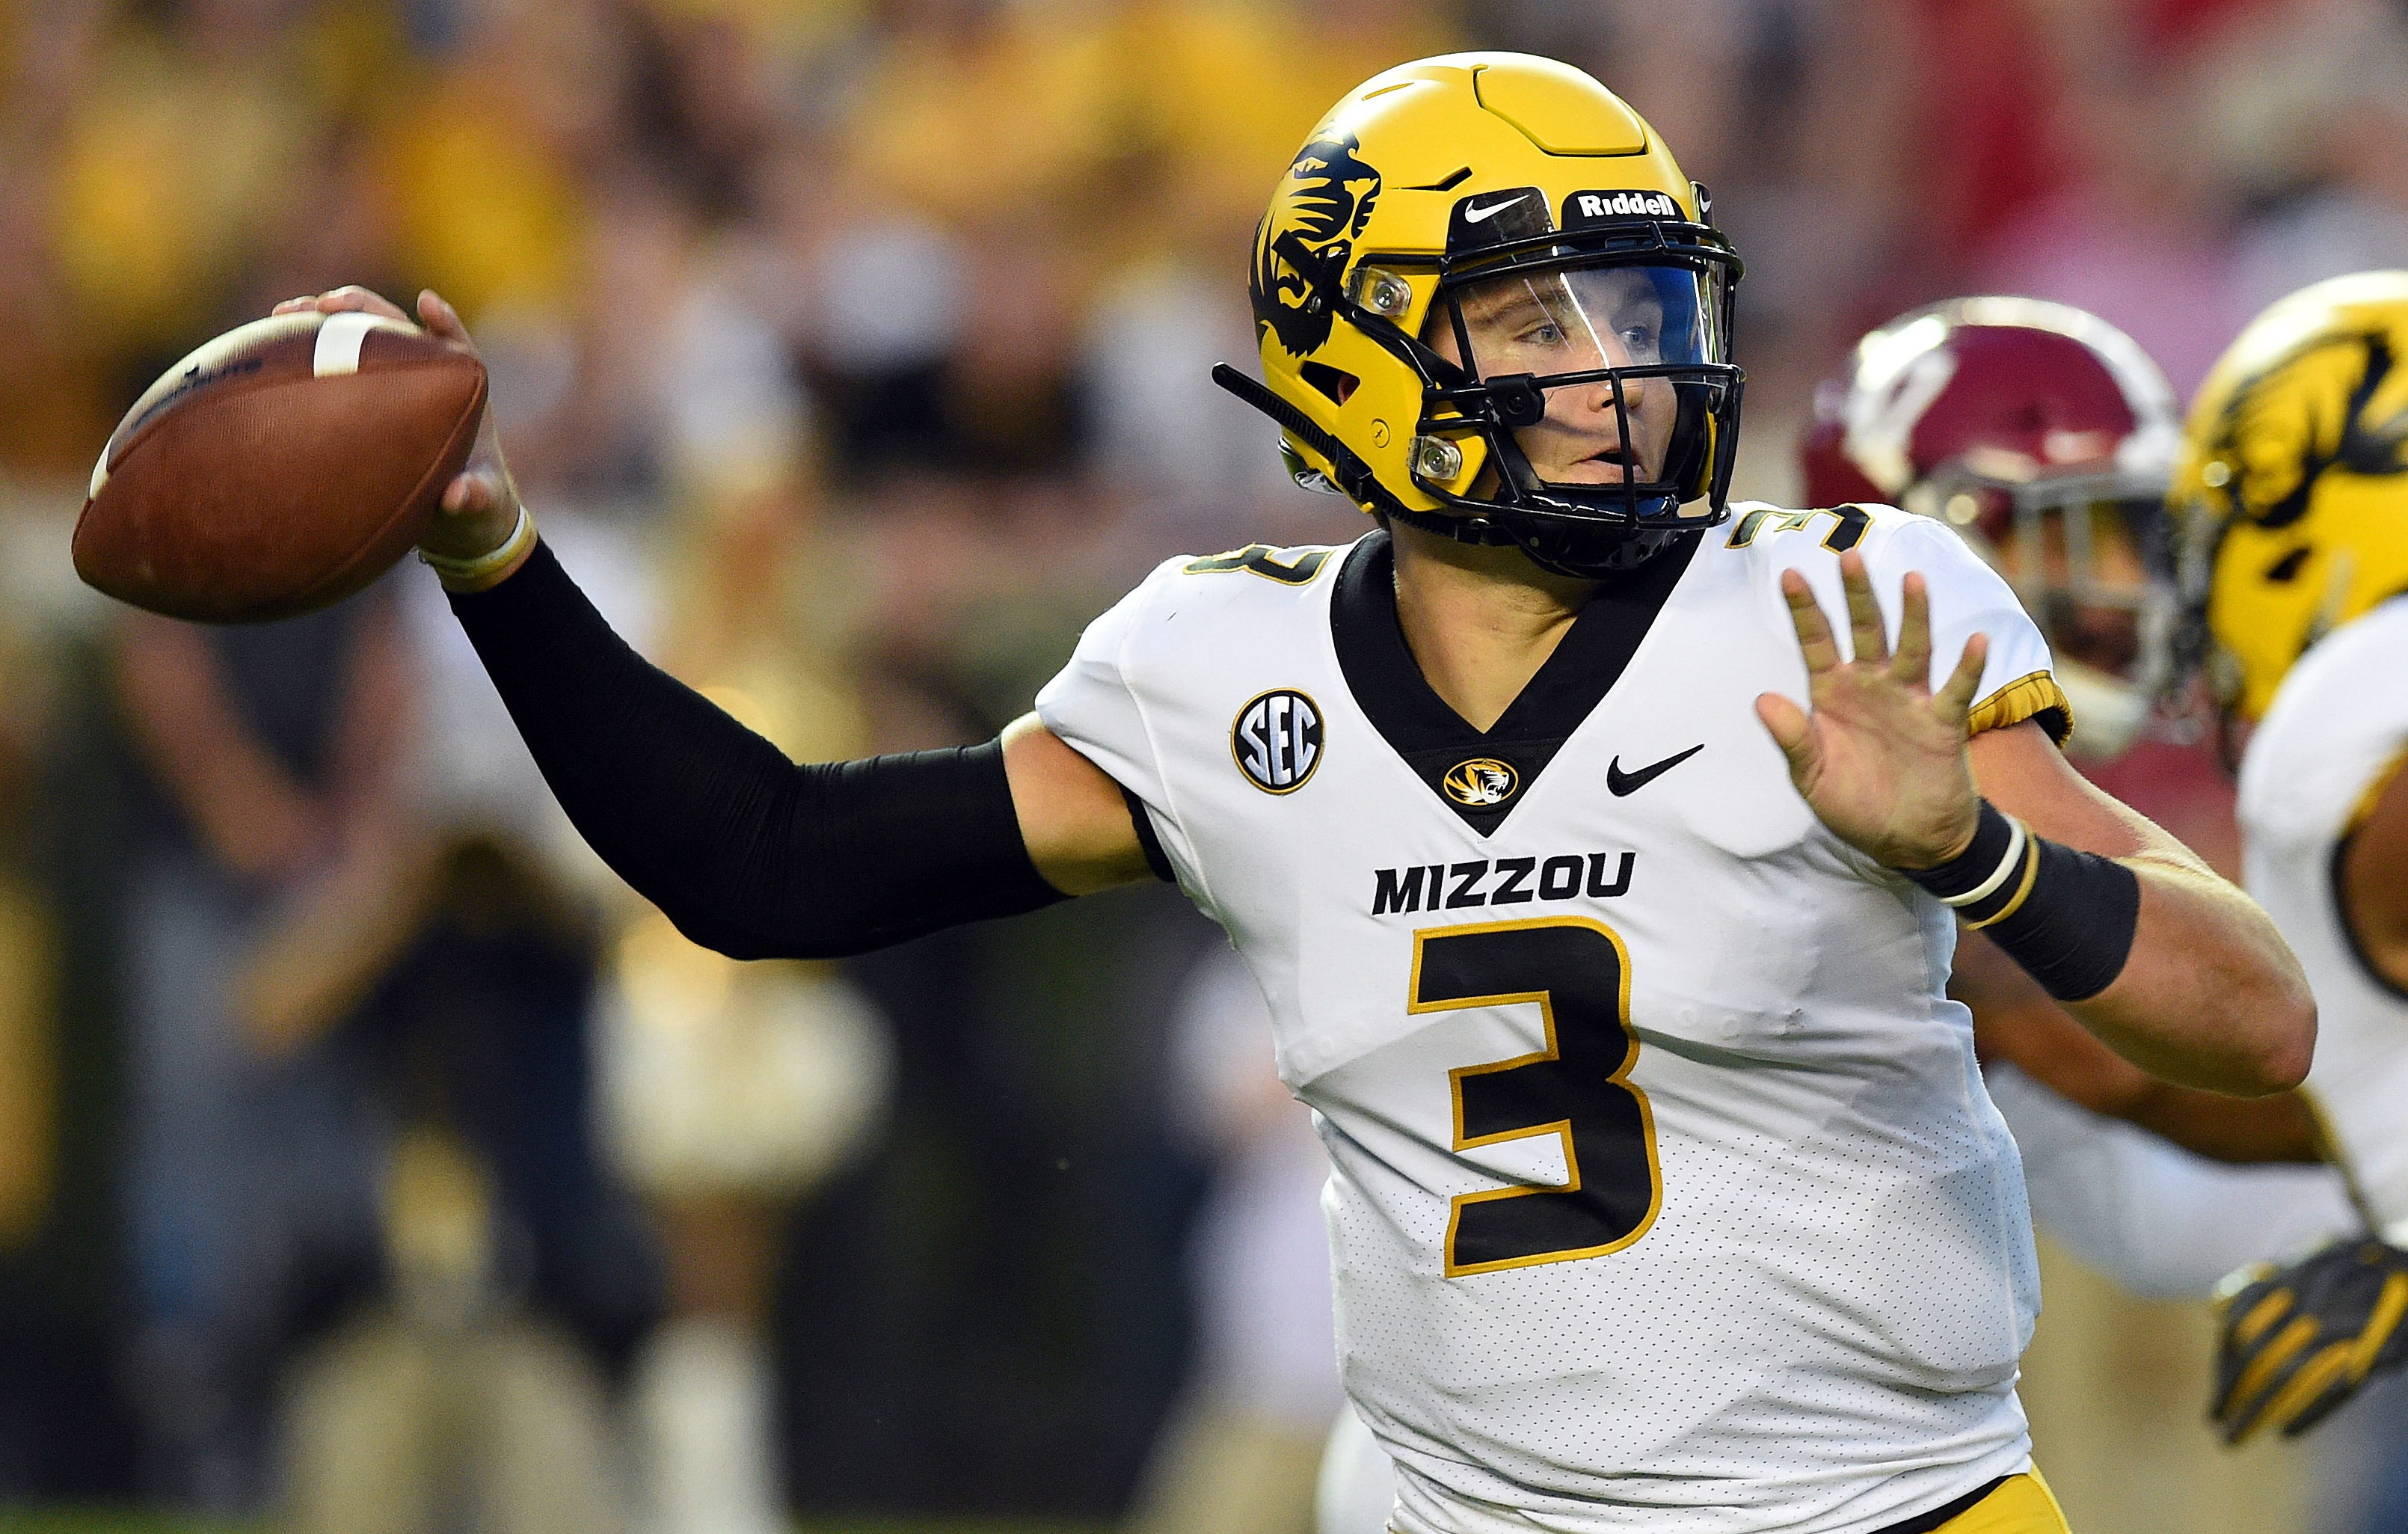 Missouri's Drew Lock reportedly visited with the Packers.